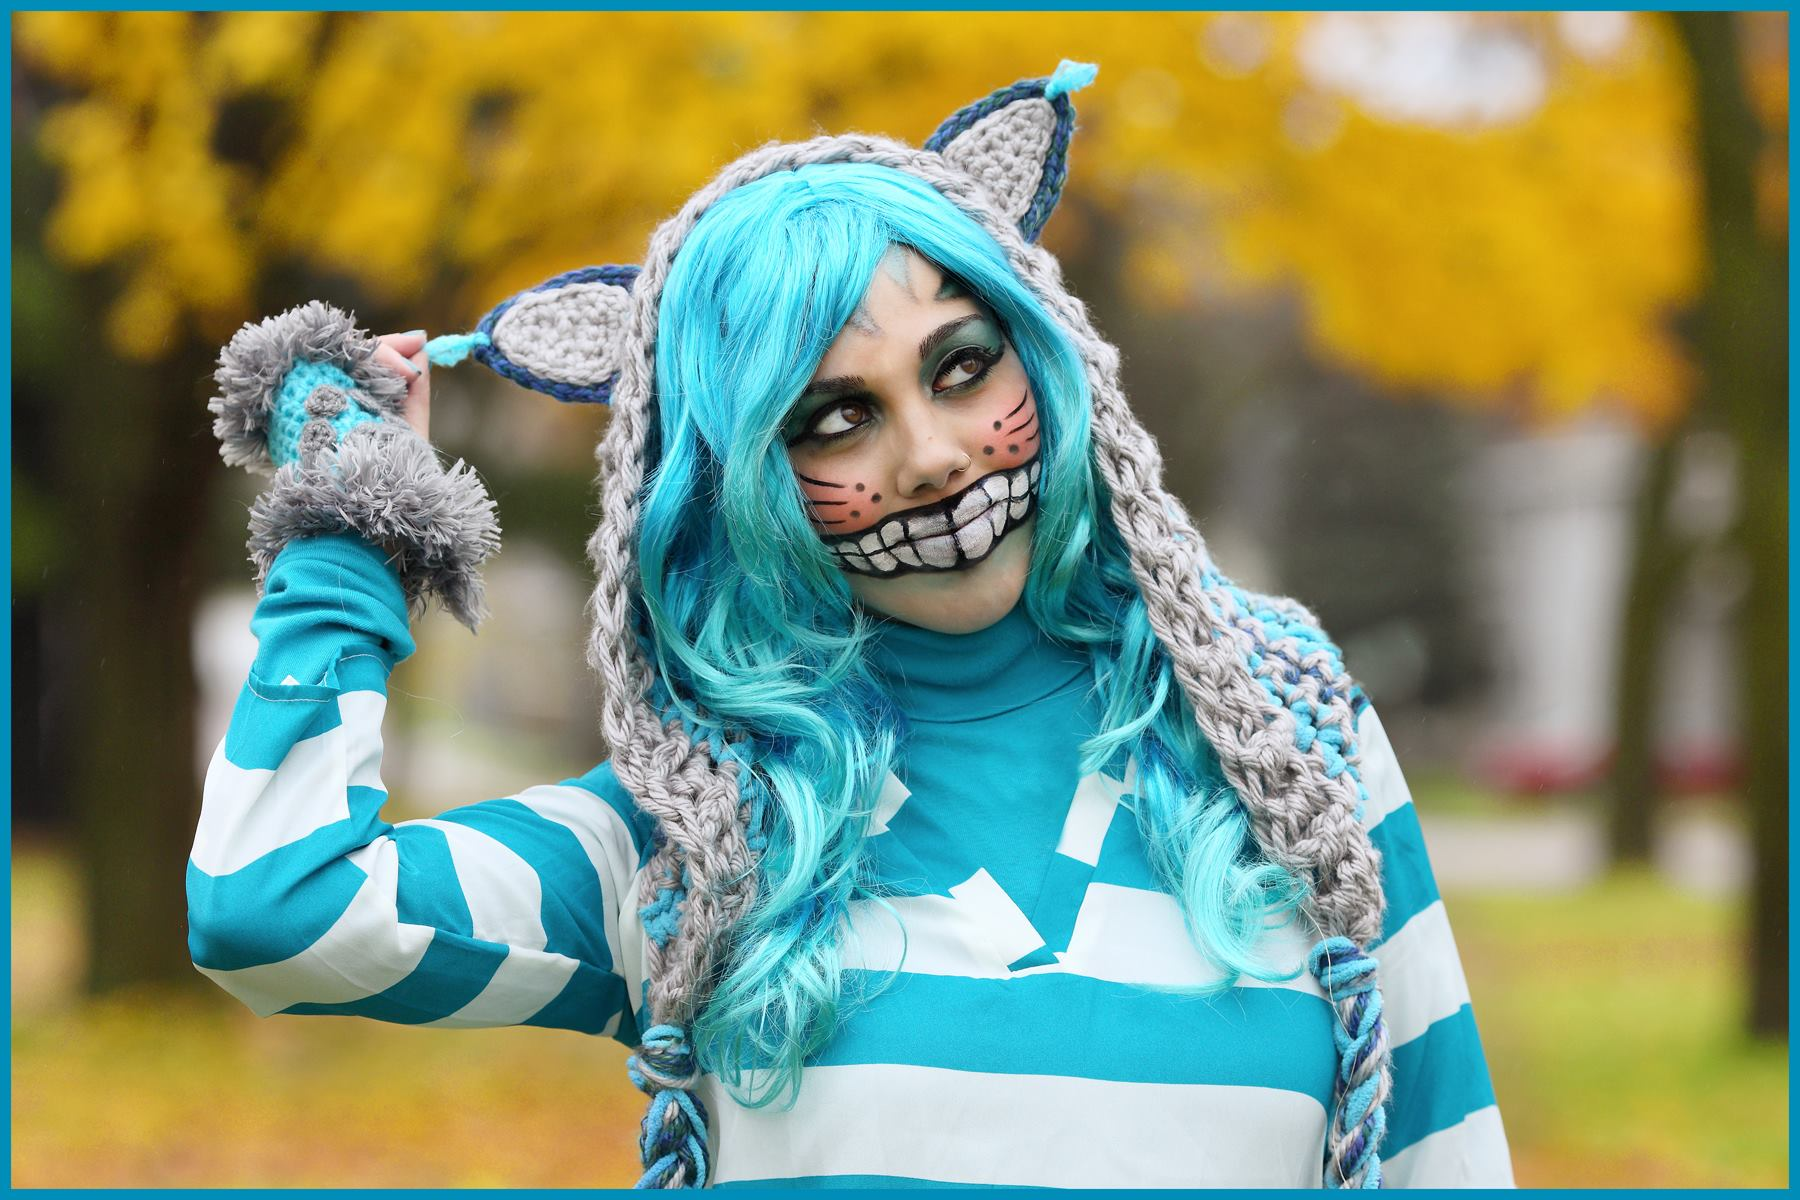 Crochet Tutorial Cheshire Cat Hoodie Yarnutopia By Nadia Fuad